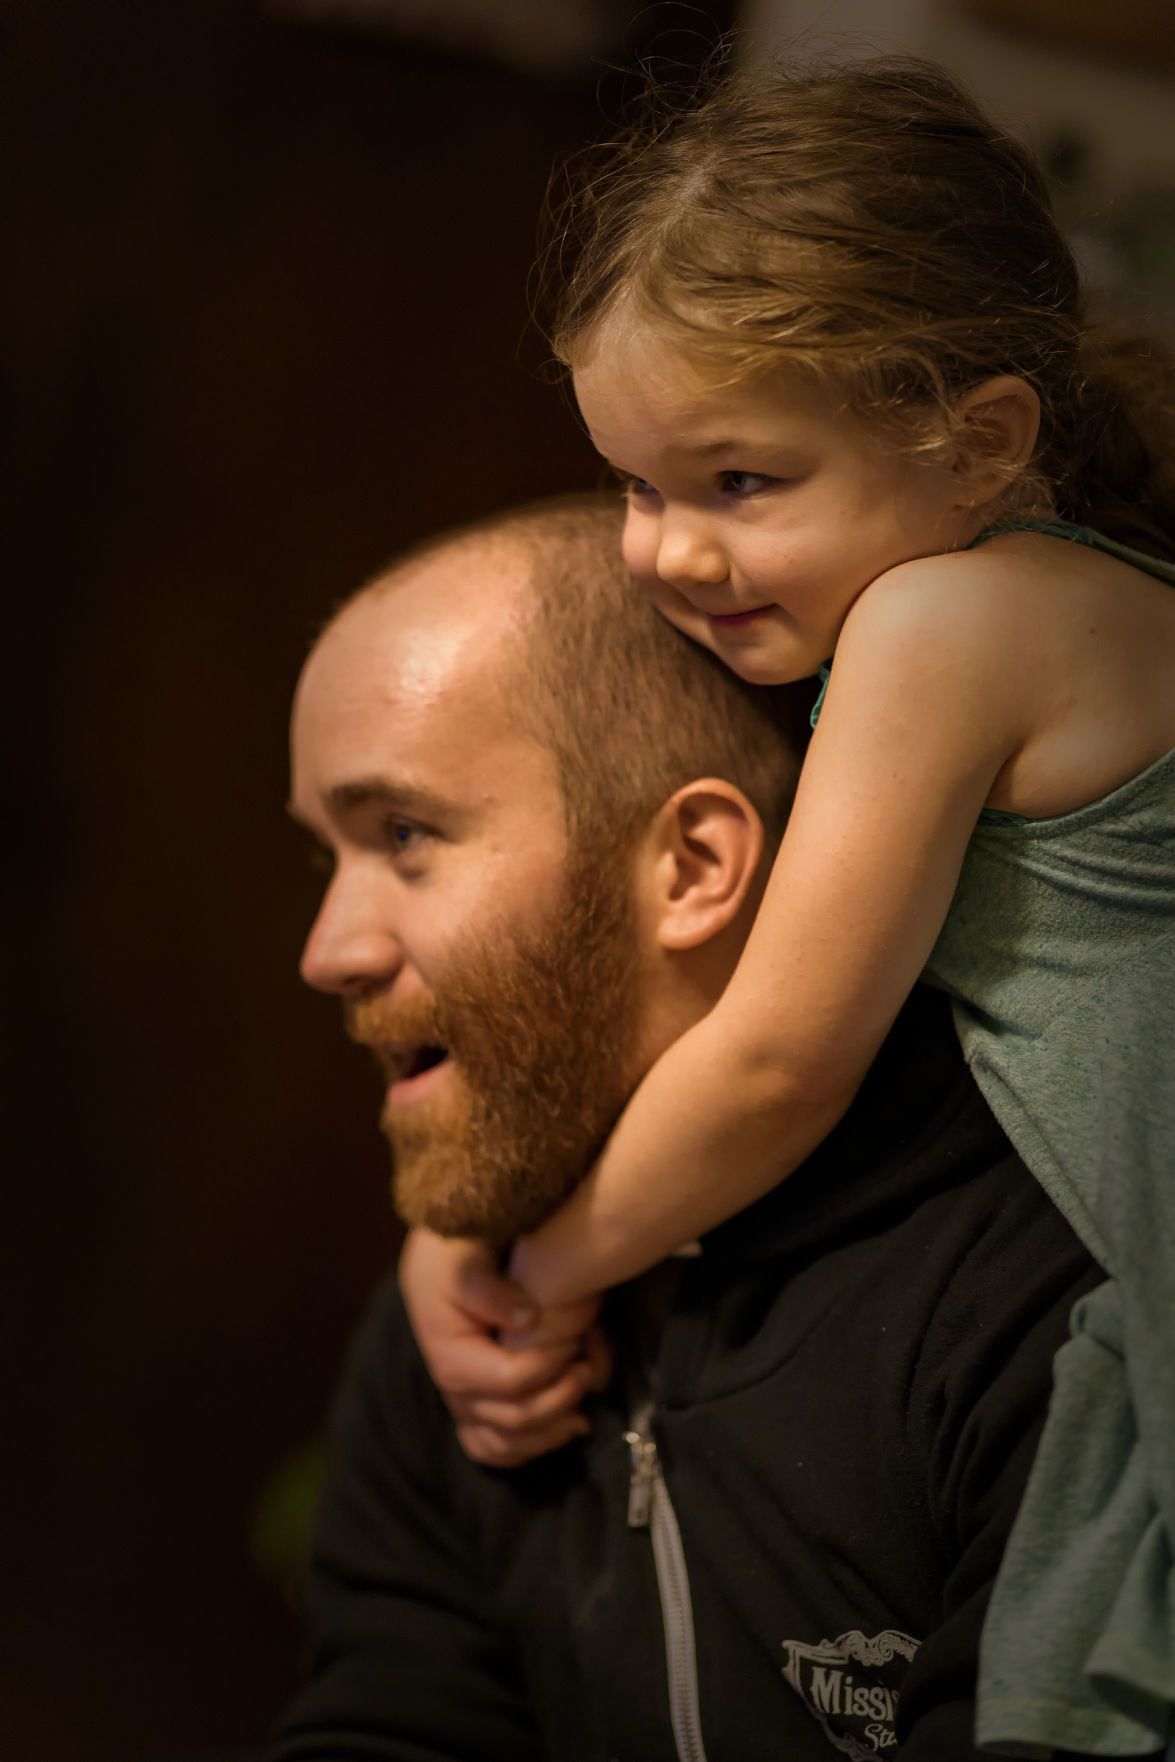 'Uncle' (son and granddaughter)